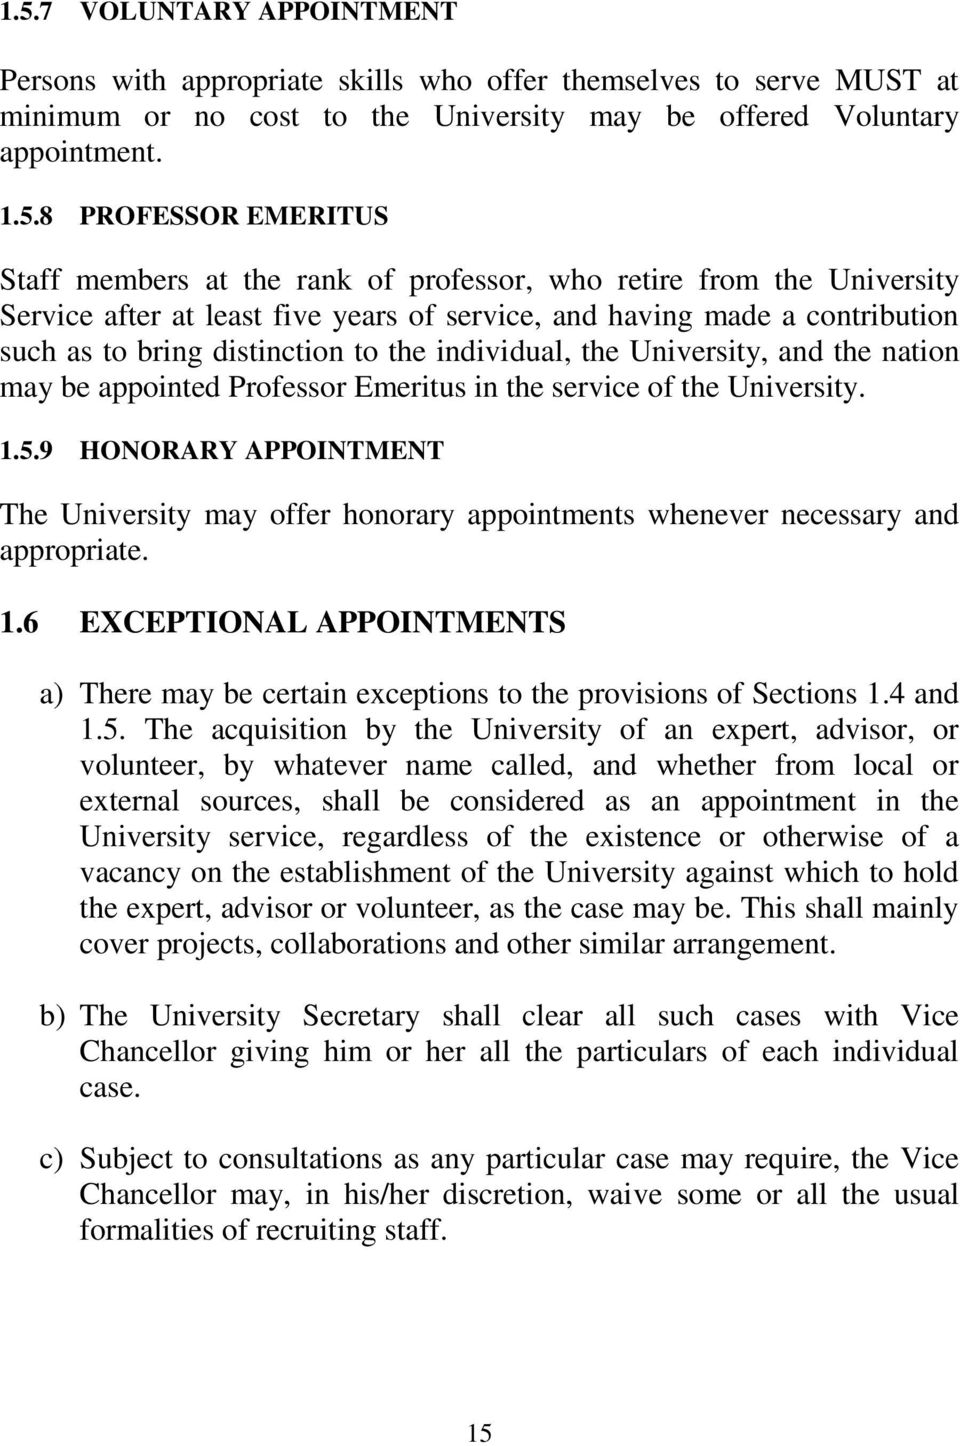 University, and the nation may be appointed Professor Emeritus in the service of the University. 1.5.